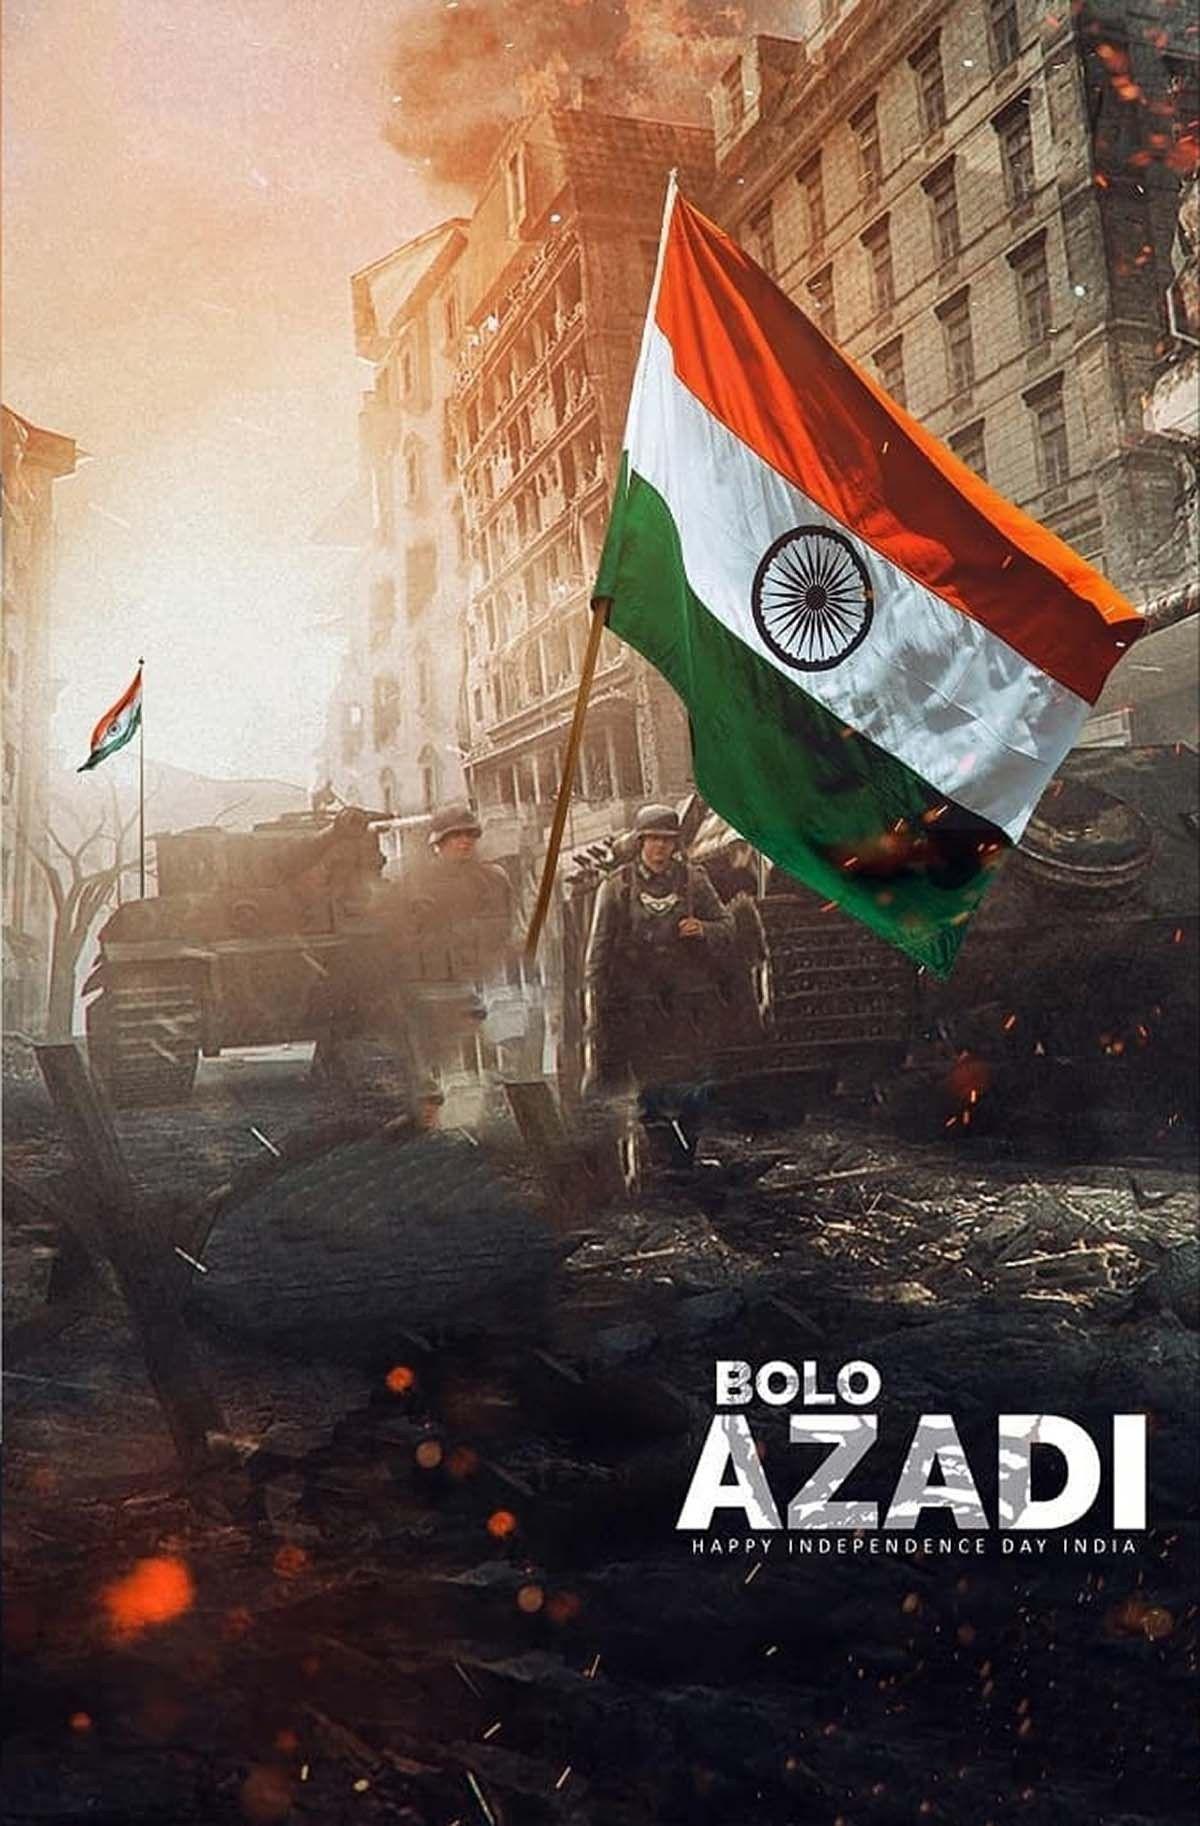 Pin By Dharmveer Editz On 26 January Hd Background Download 2021 New In 2021 Editing Background January Background Republic Day 26 january 2021 image black background